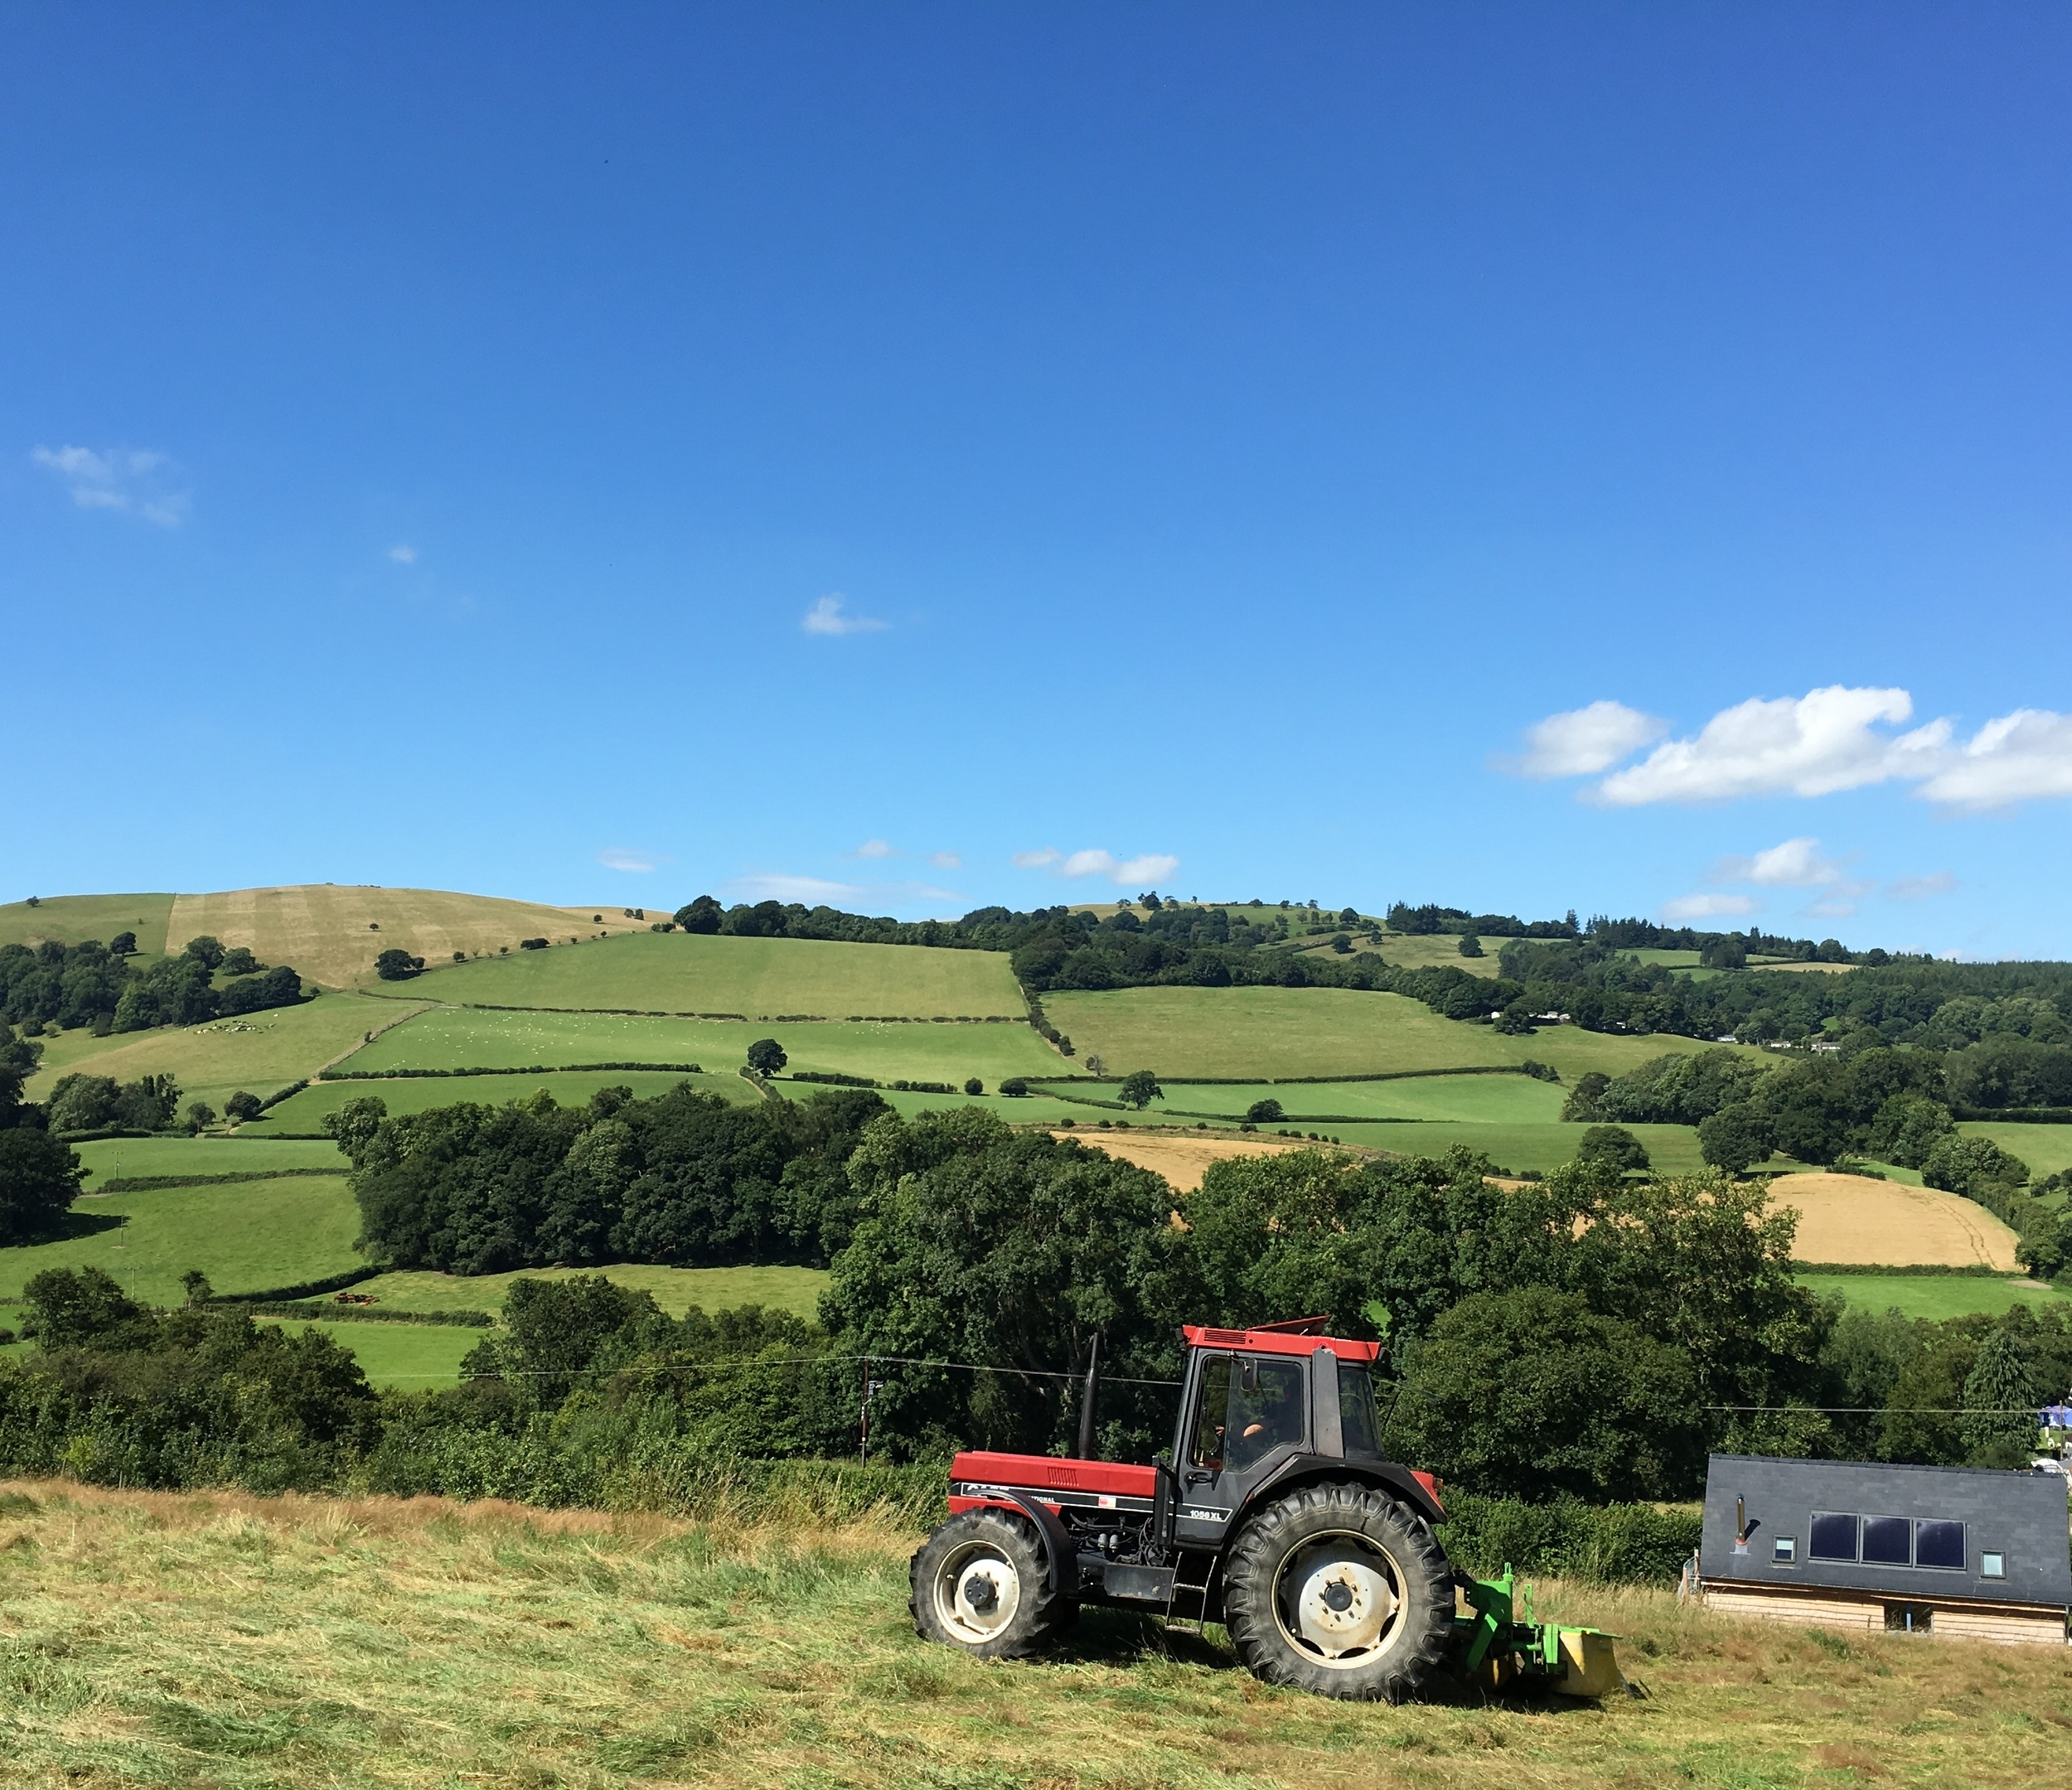 tractor tedding the hay with view of the hills in the background